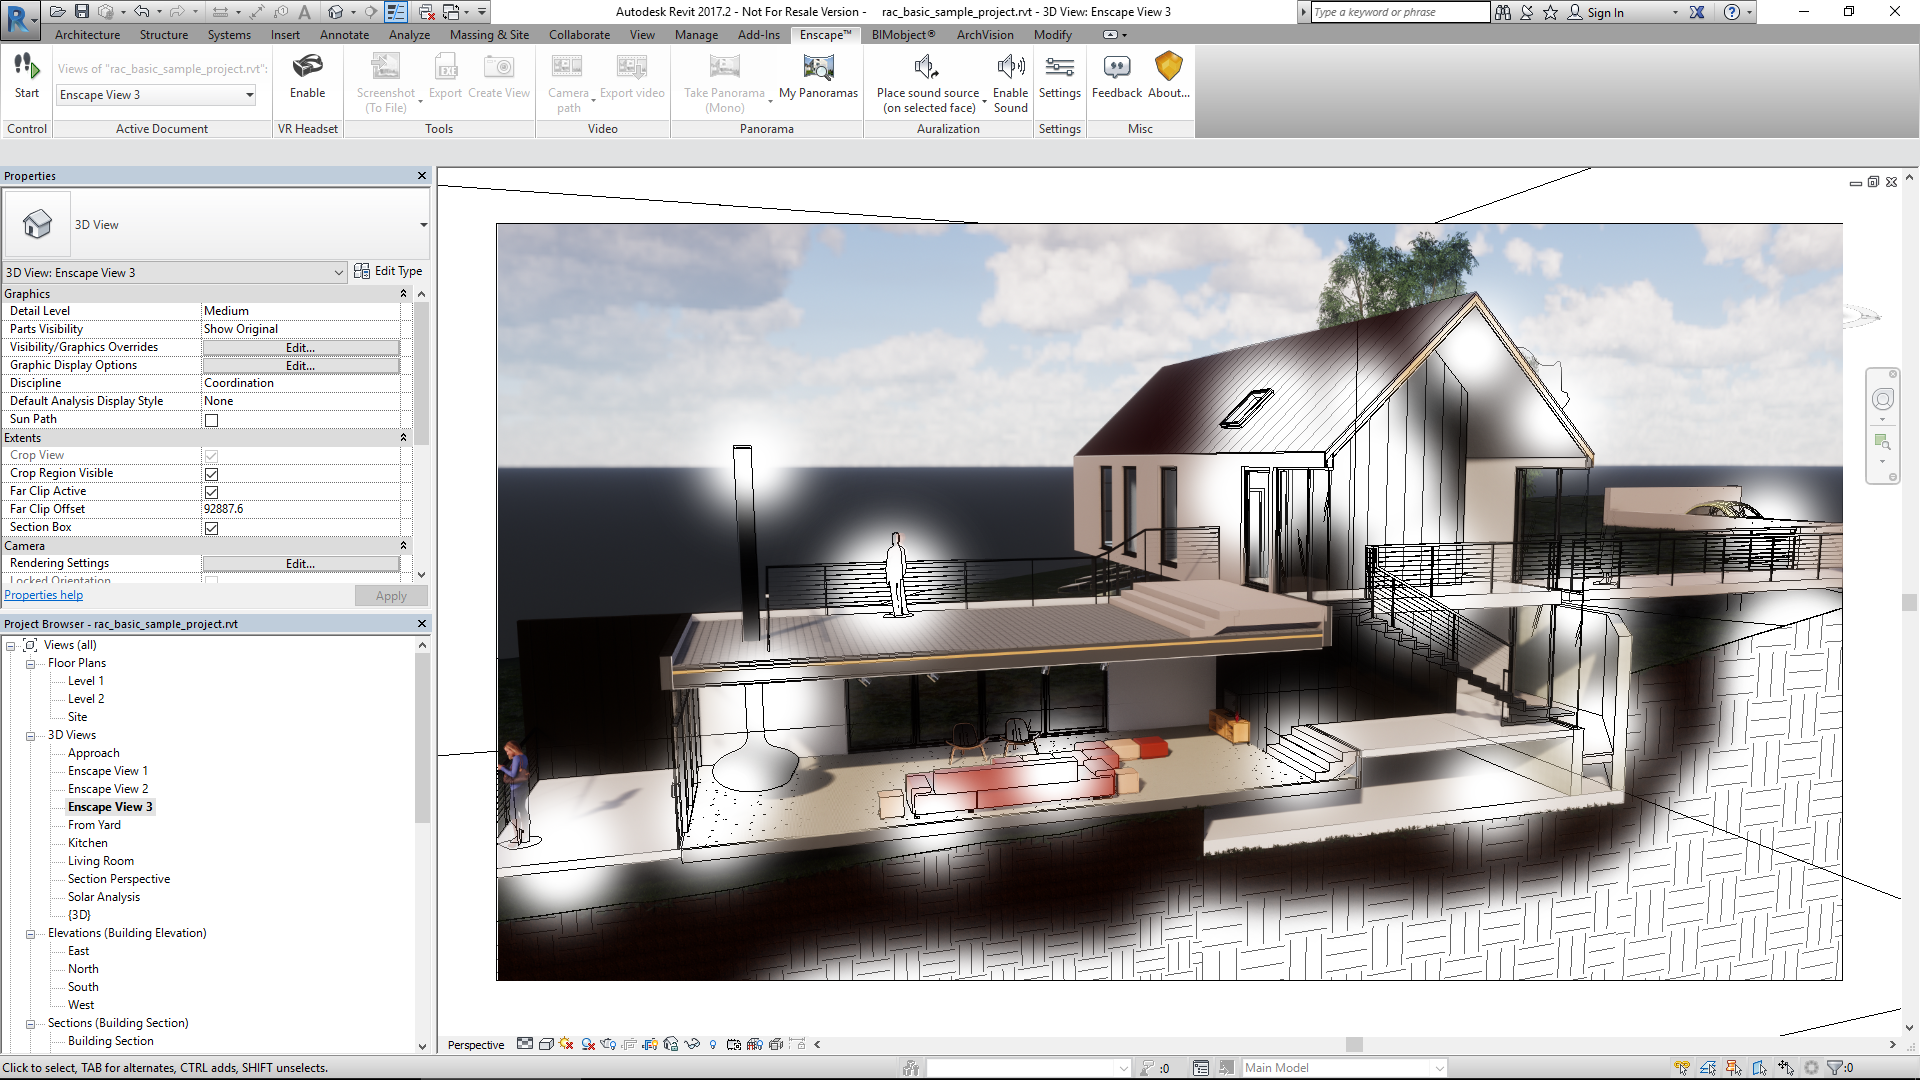 Learn These How To Change 3d View Size In Revit {Swypeout}